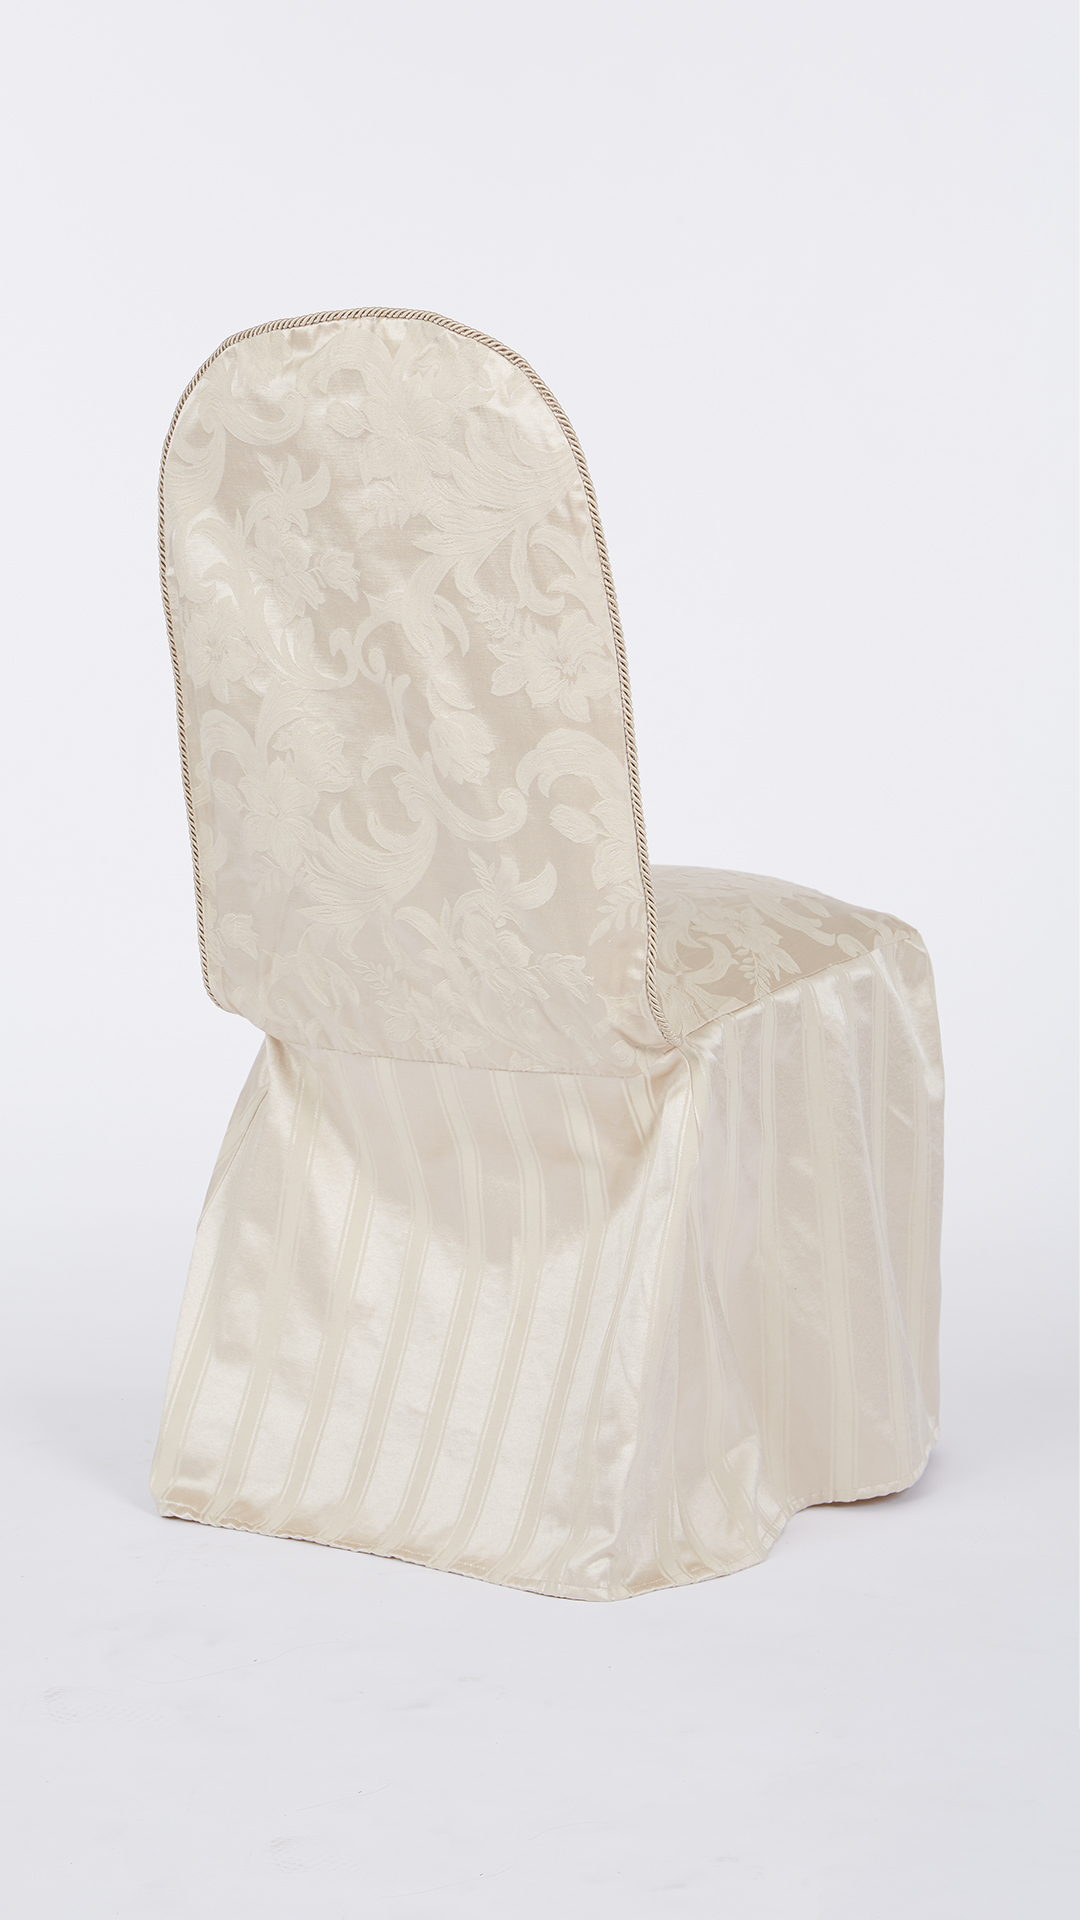 taupe chair covers potty with tray table dream cover decor add to quote